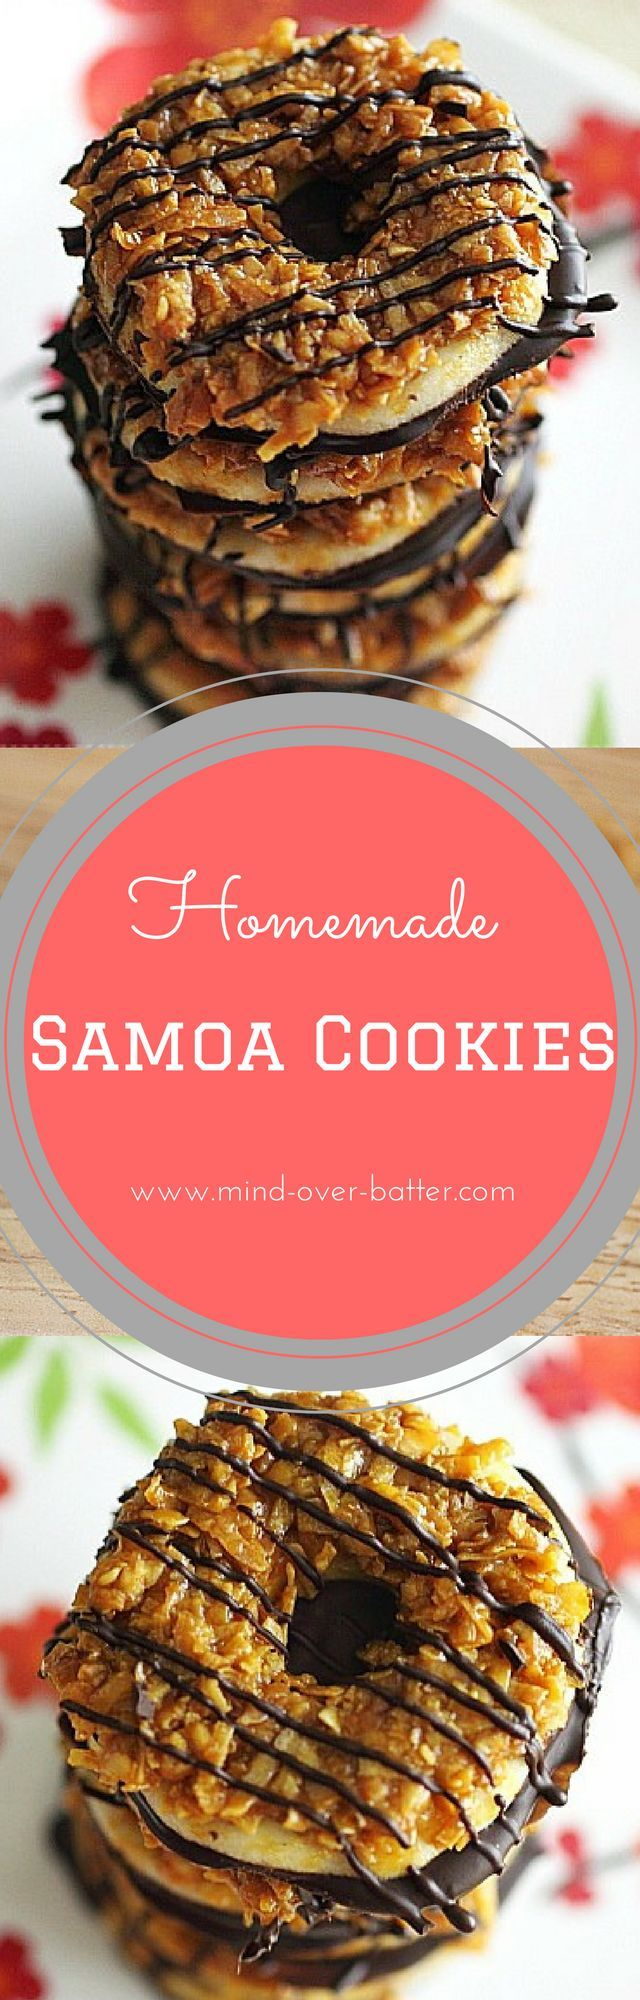 Homemade Samoa Cookies. For when you're jonesing for a Girl Scout Cookie and there is no girl scout to be found! http://www.mind-over-batter.com